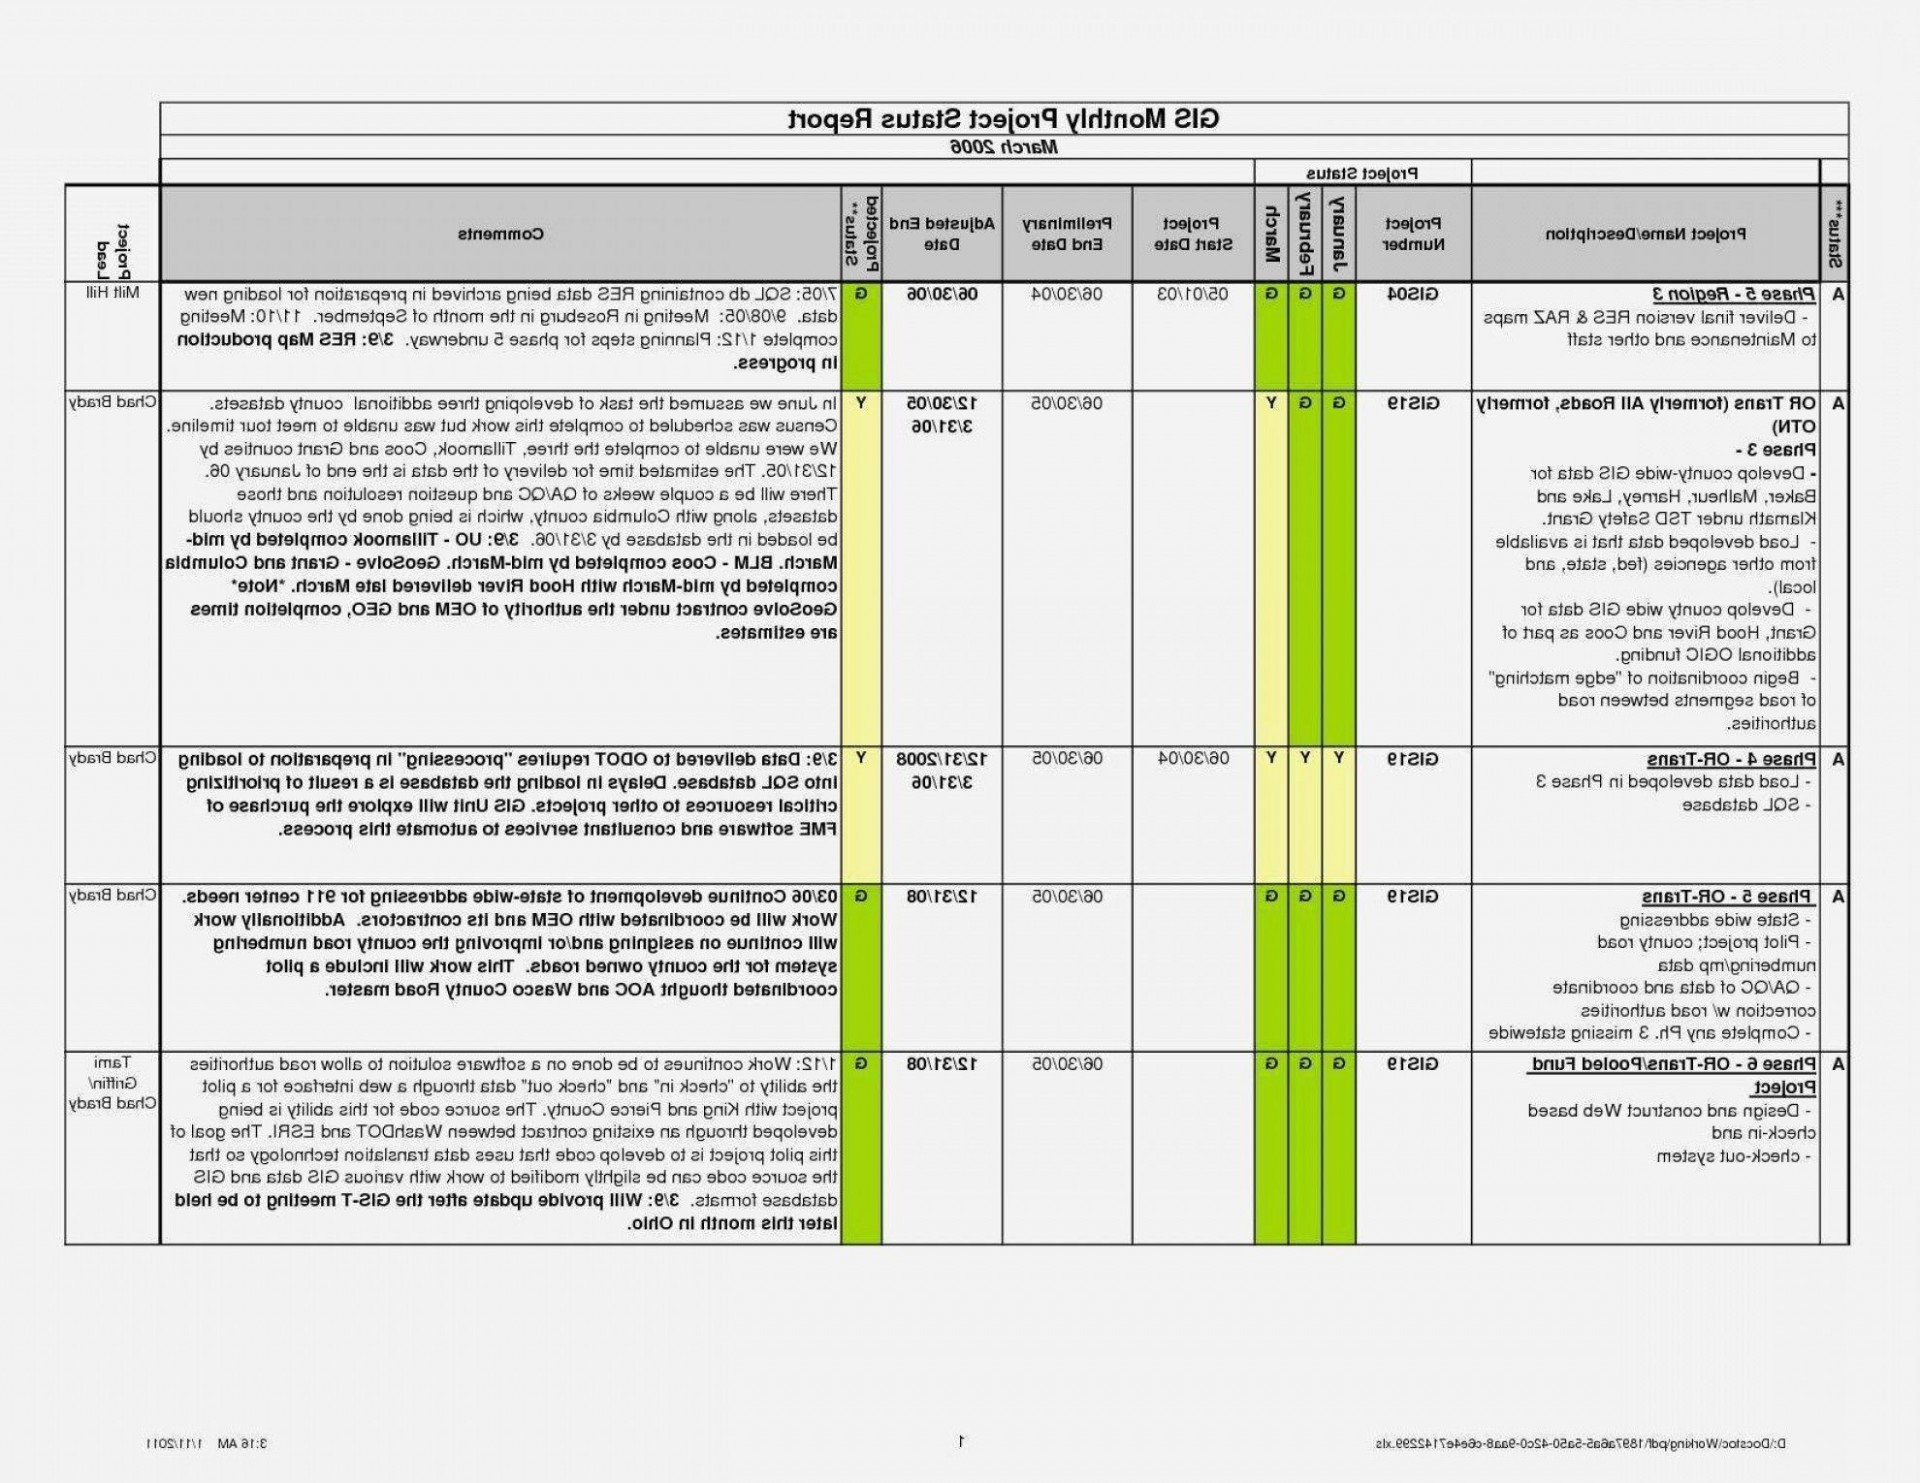 000 Fascinating Project Management Statu Report Example Highest Quality  Template Word Agile Progres1920